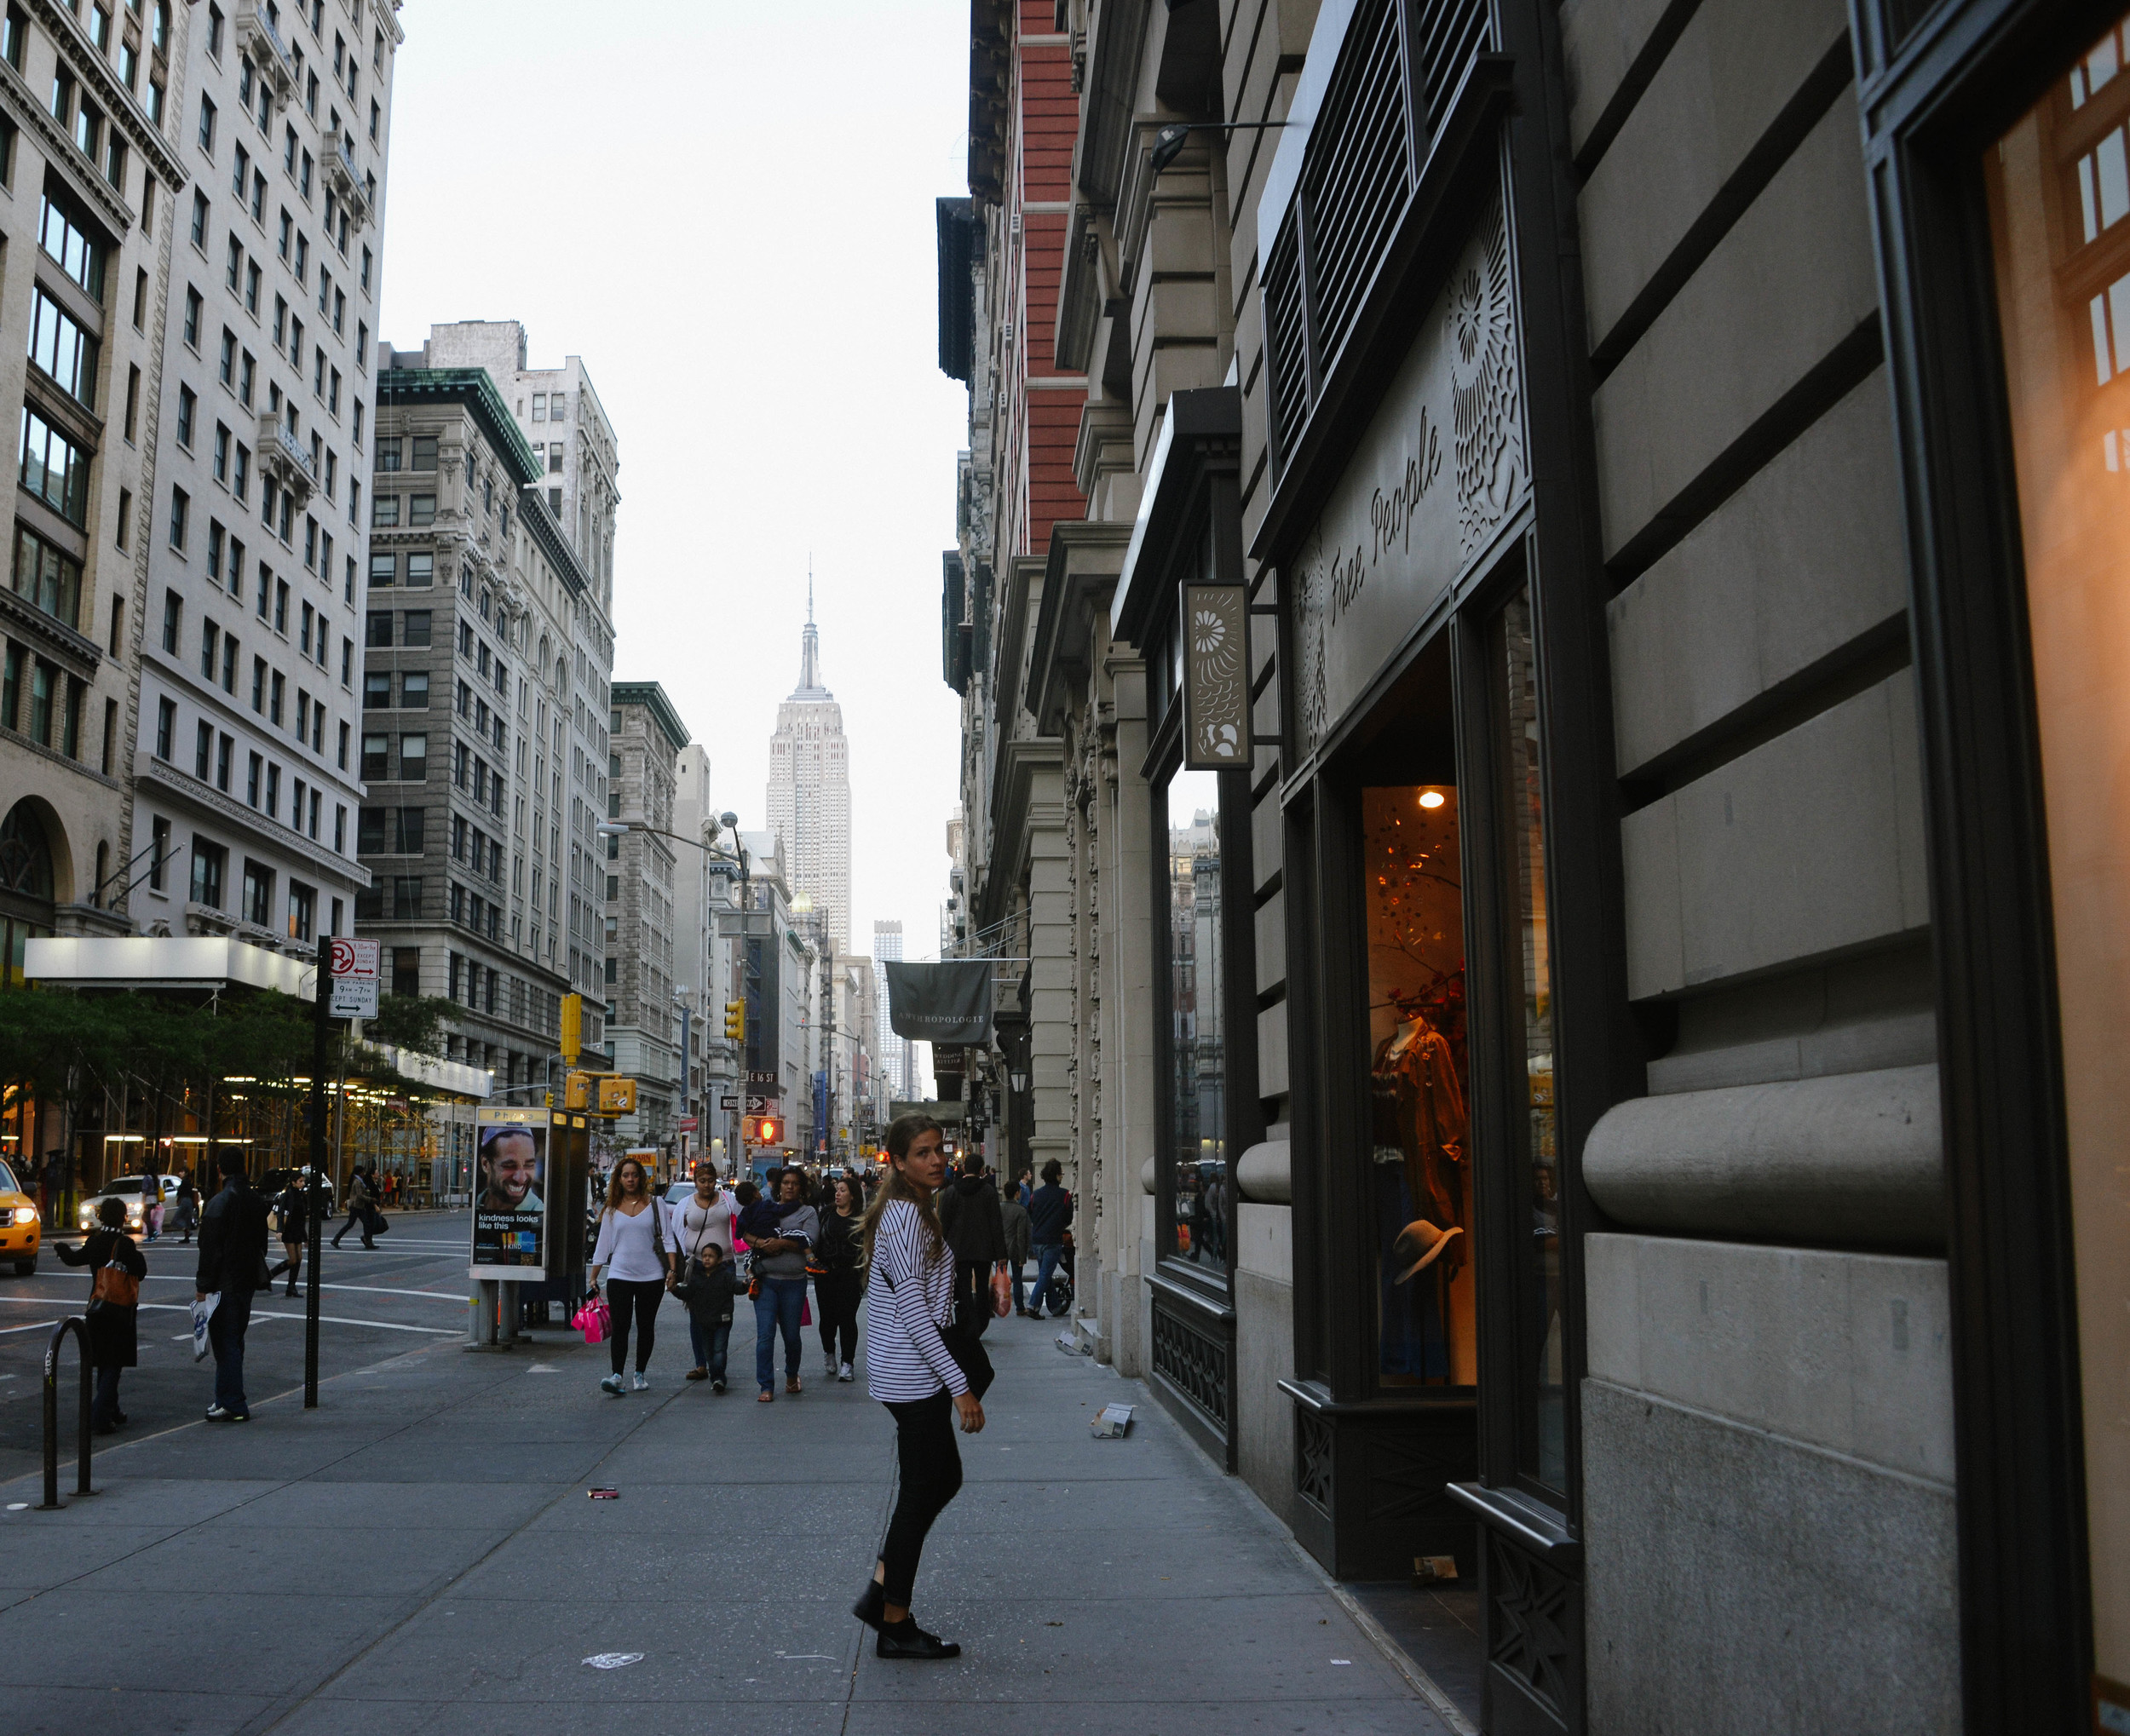 Walking down 5th Avenue.